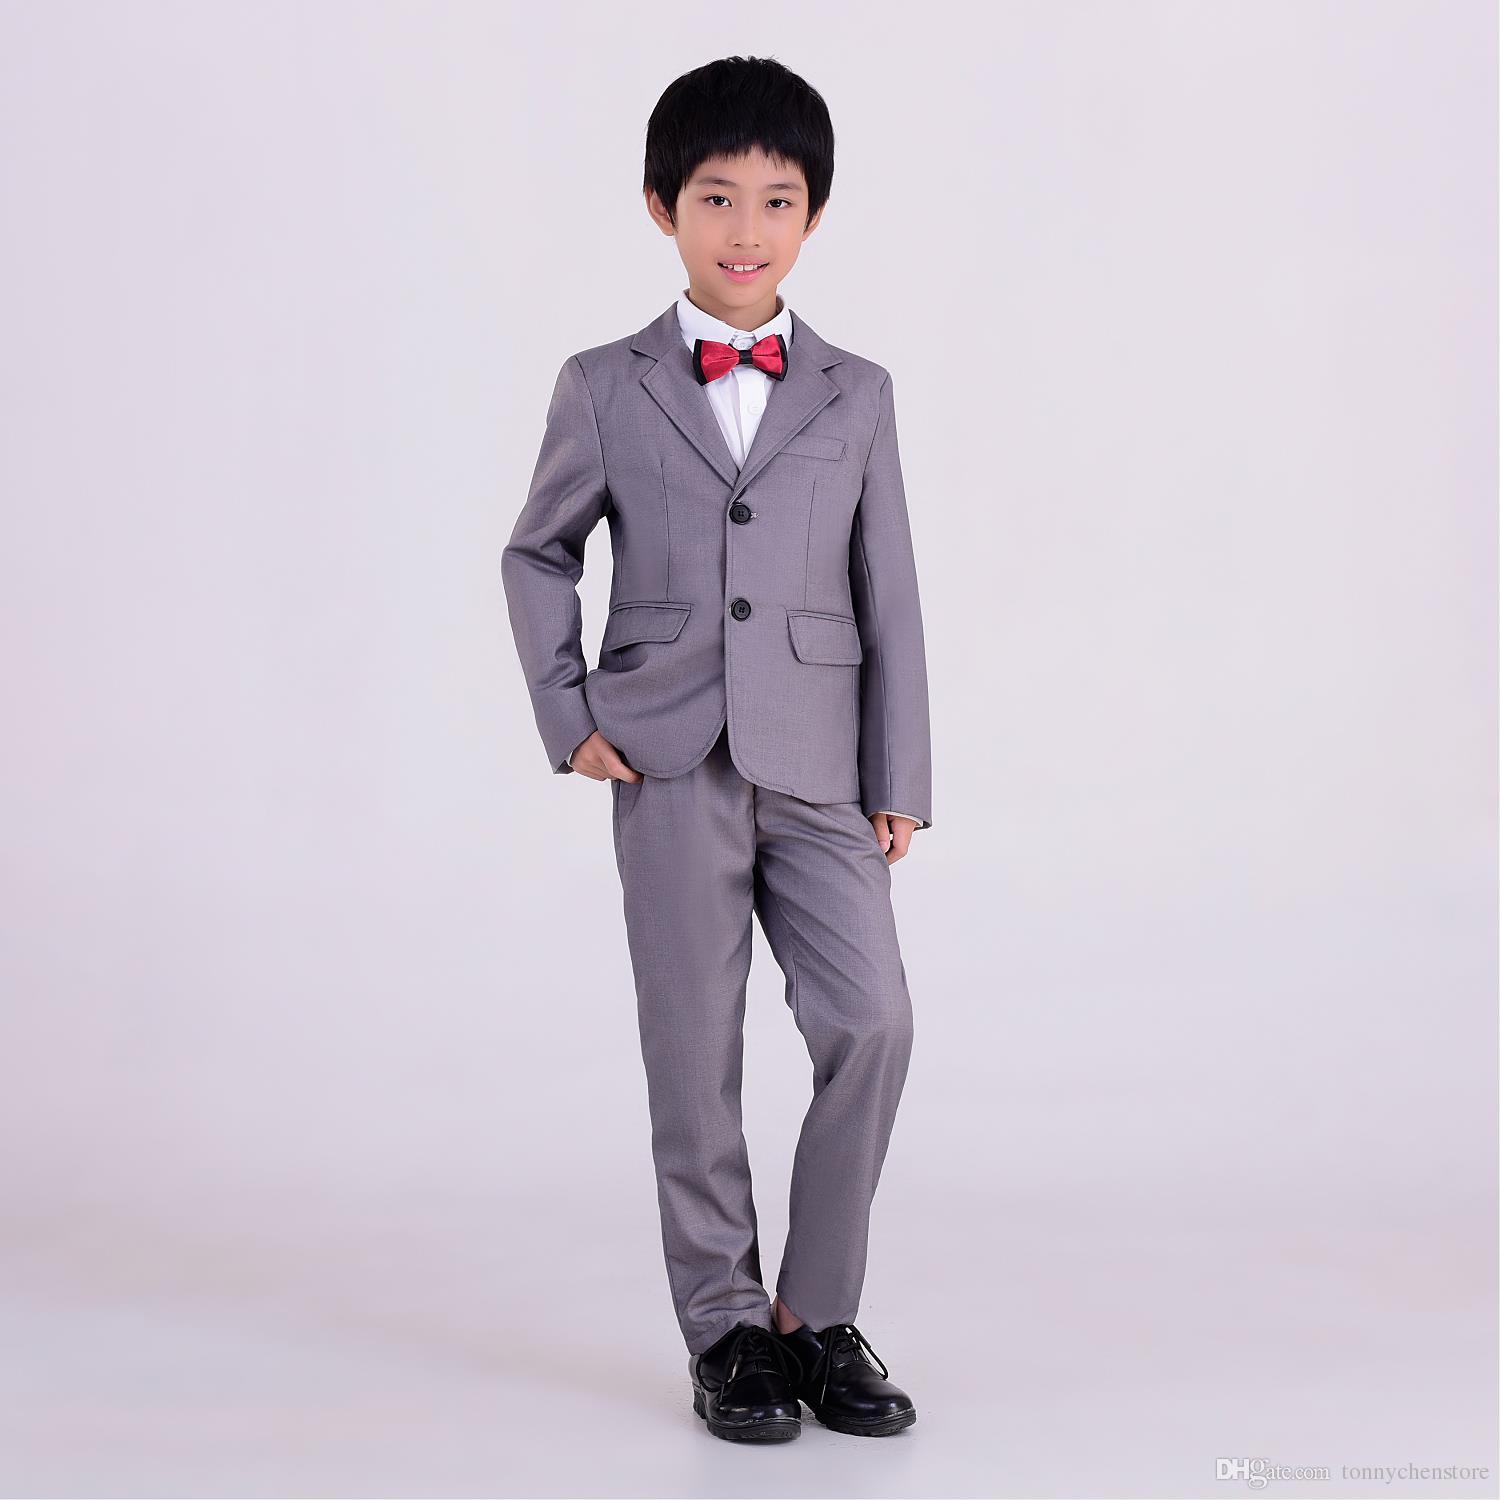 Boys Suits - We have wide range of boys suits for wedding exclusive at Occasion Wear for Kids UK. Buy today boys wedding suits and kids wedding outfits online with free home delivery! JavaScript seems to be disabled in your browser.